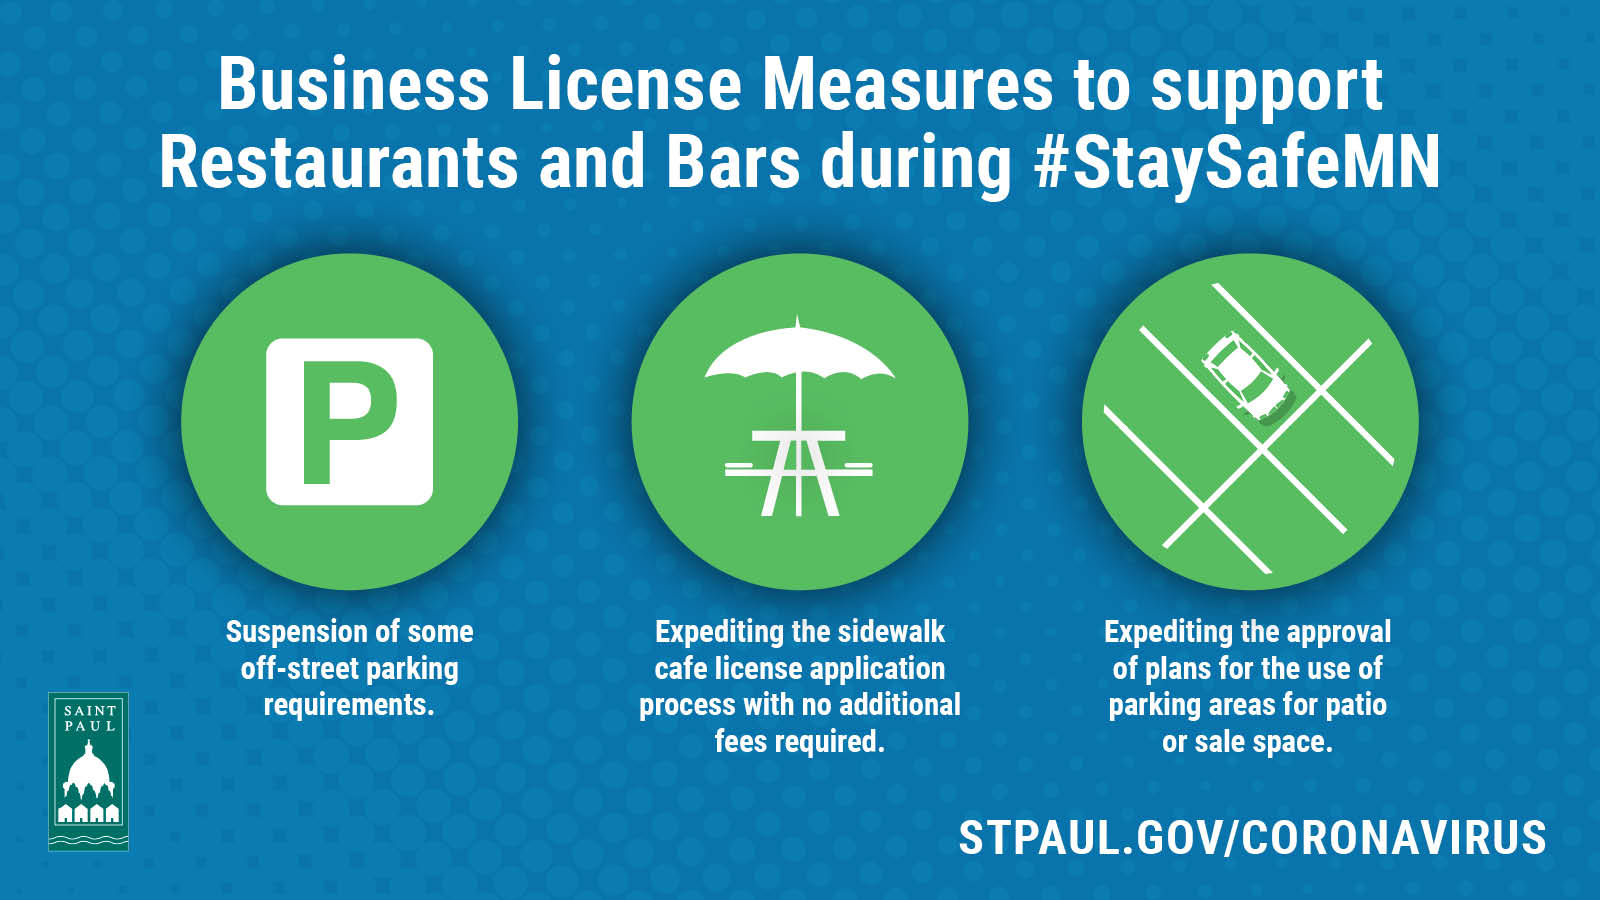 Business License Measures to Support Restaurants and Bars